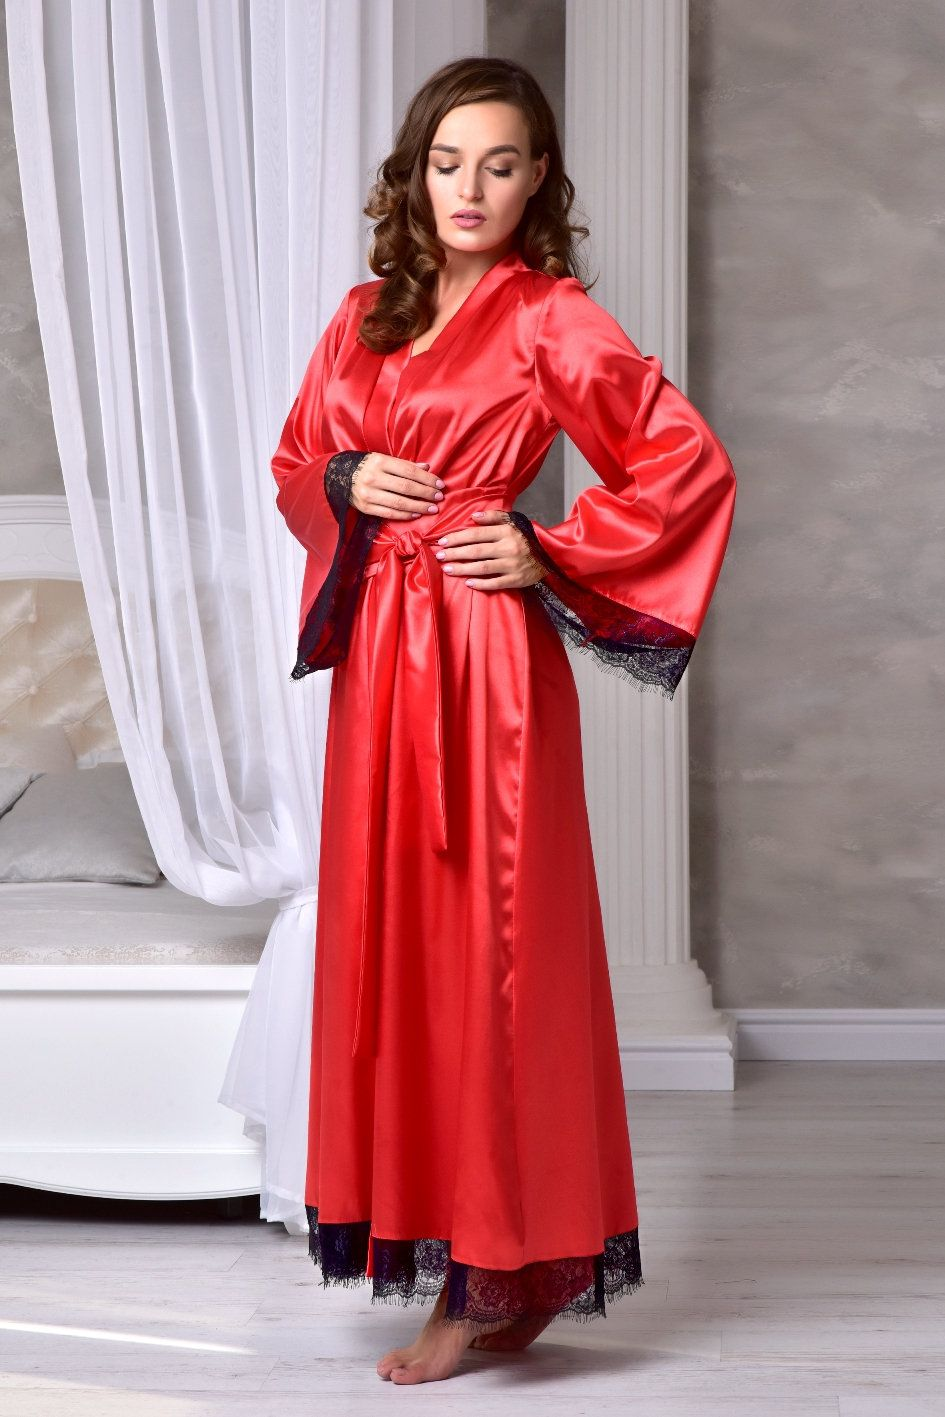 cf5d7639c1 Blouse Dress · Satin Dresses · Lacer · Excited to share the latest addition  to my  etsy shop  Red long bridal robe